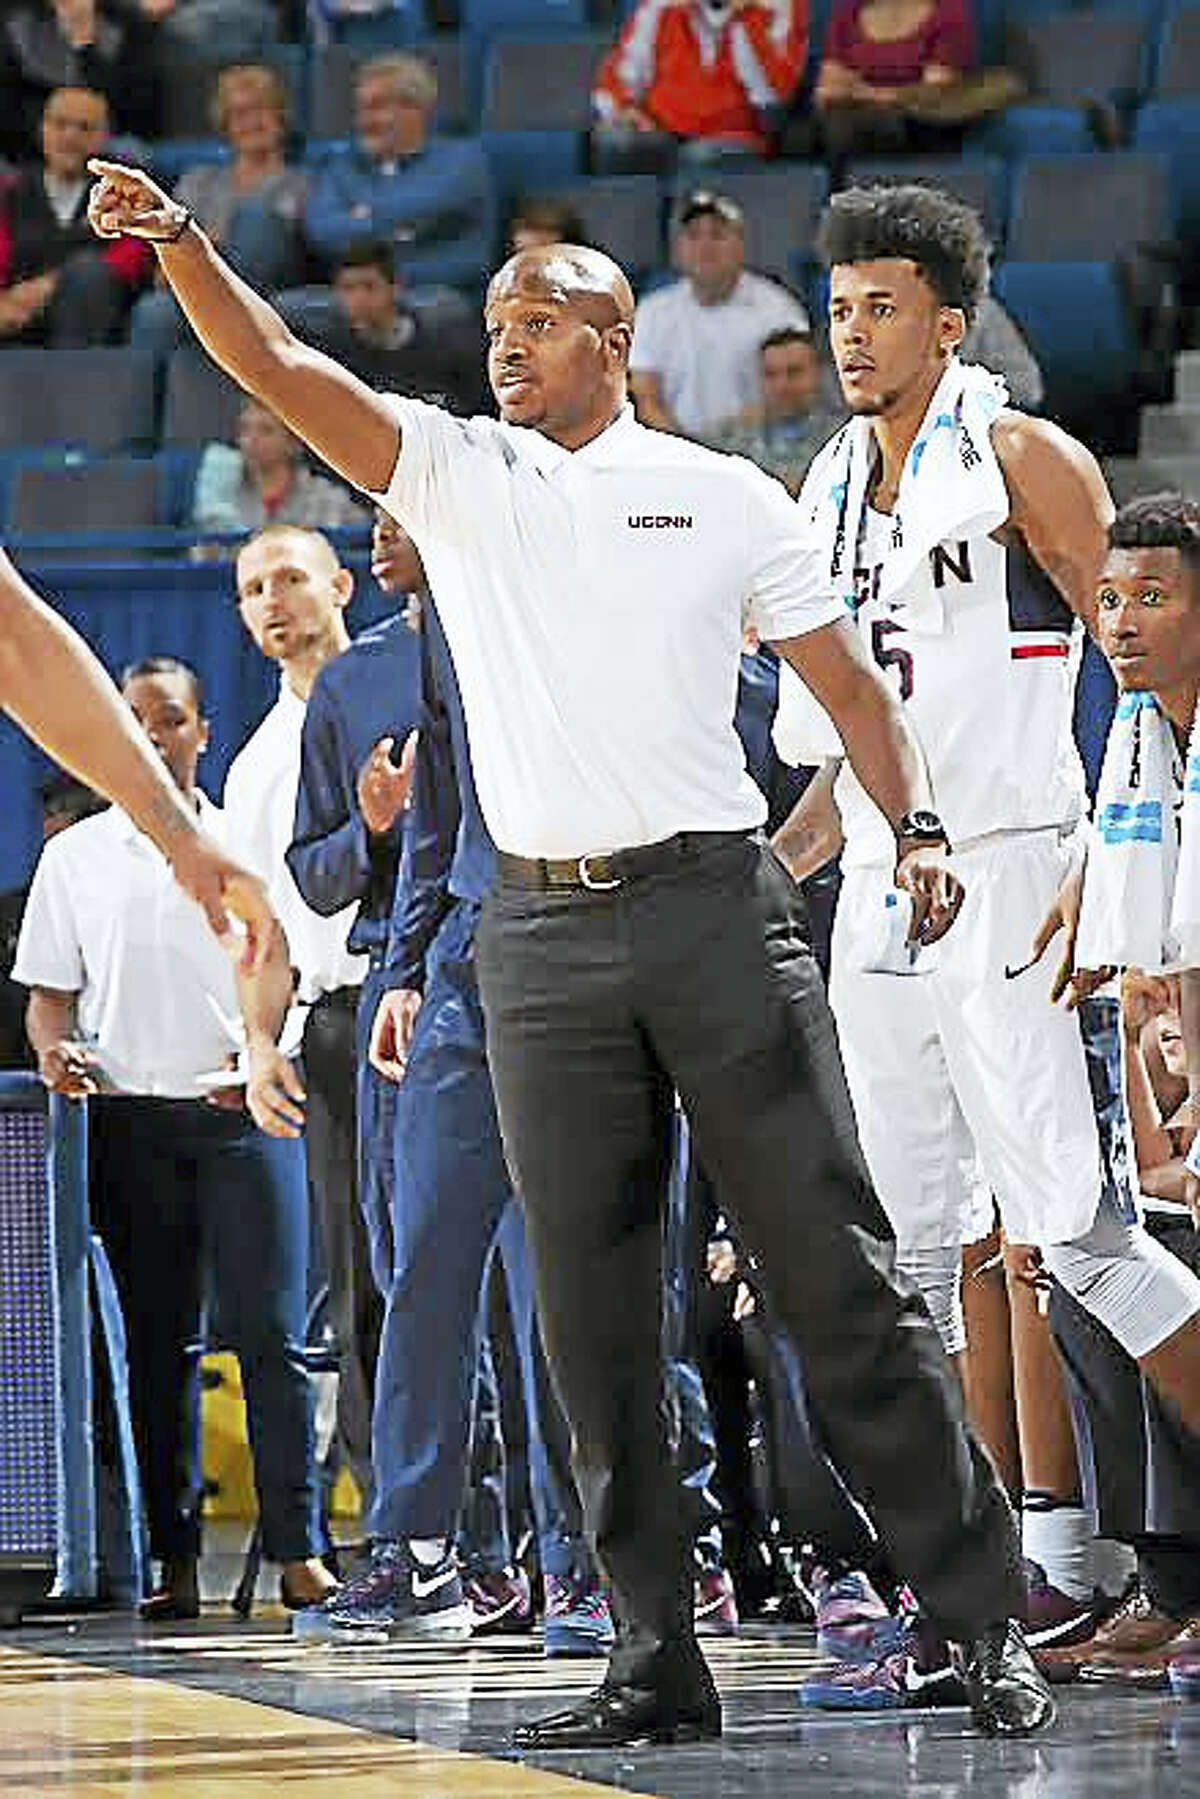 Dwayne Killings joined UConn's coaching staff this season after spending eight seasons at Temple.Photo courtesy of UConn athletics